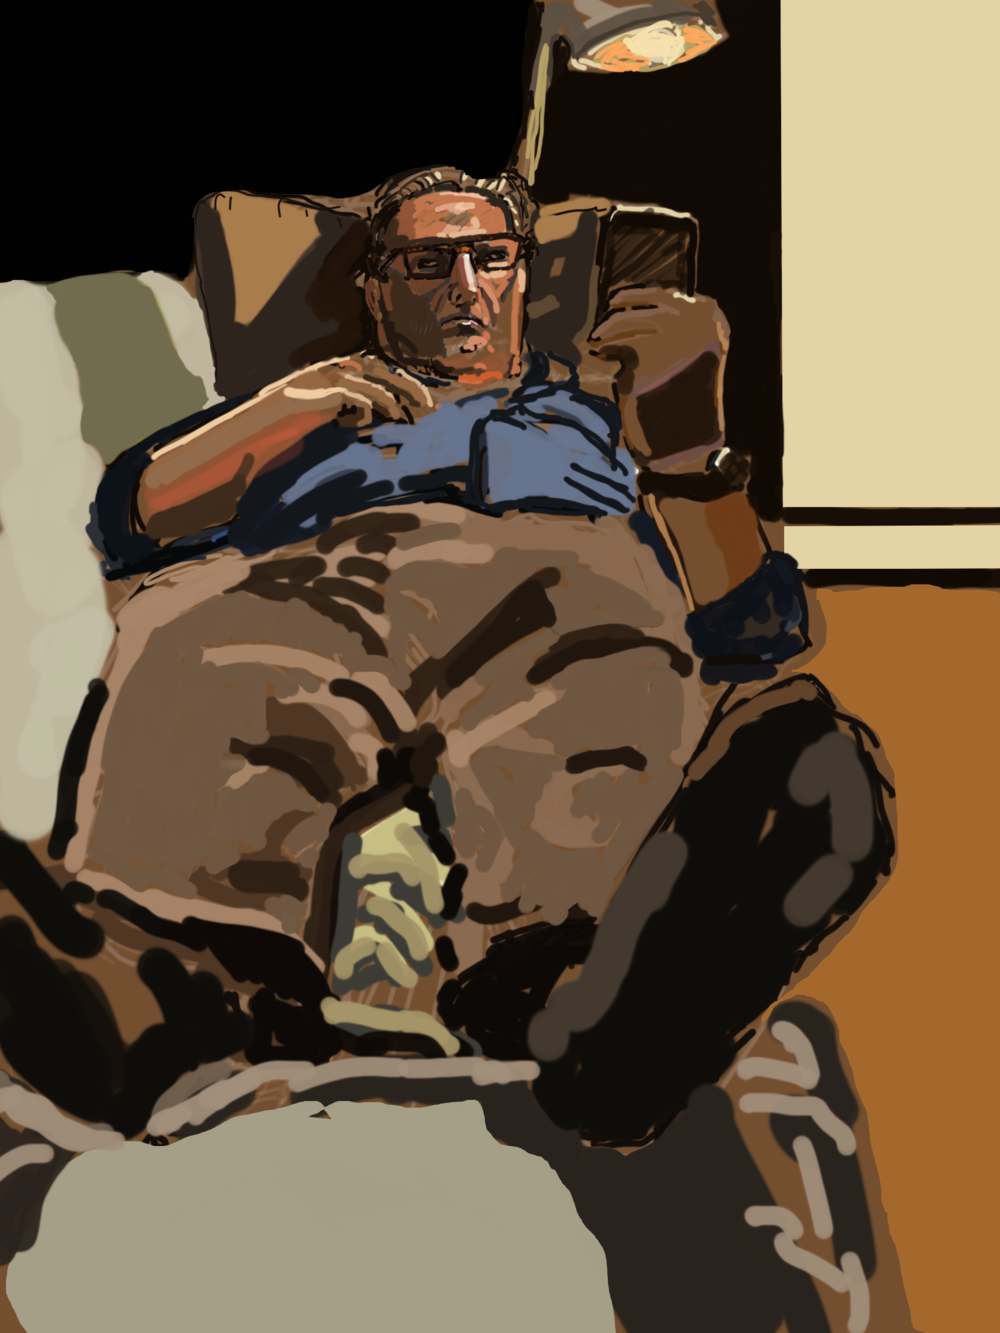 Dad on the Couch